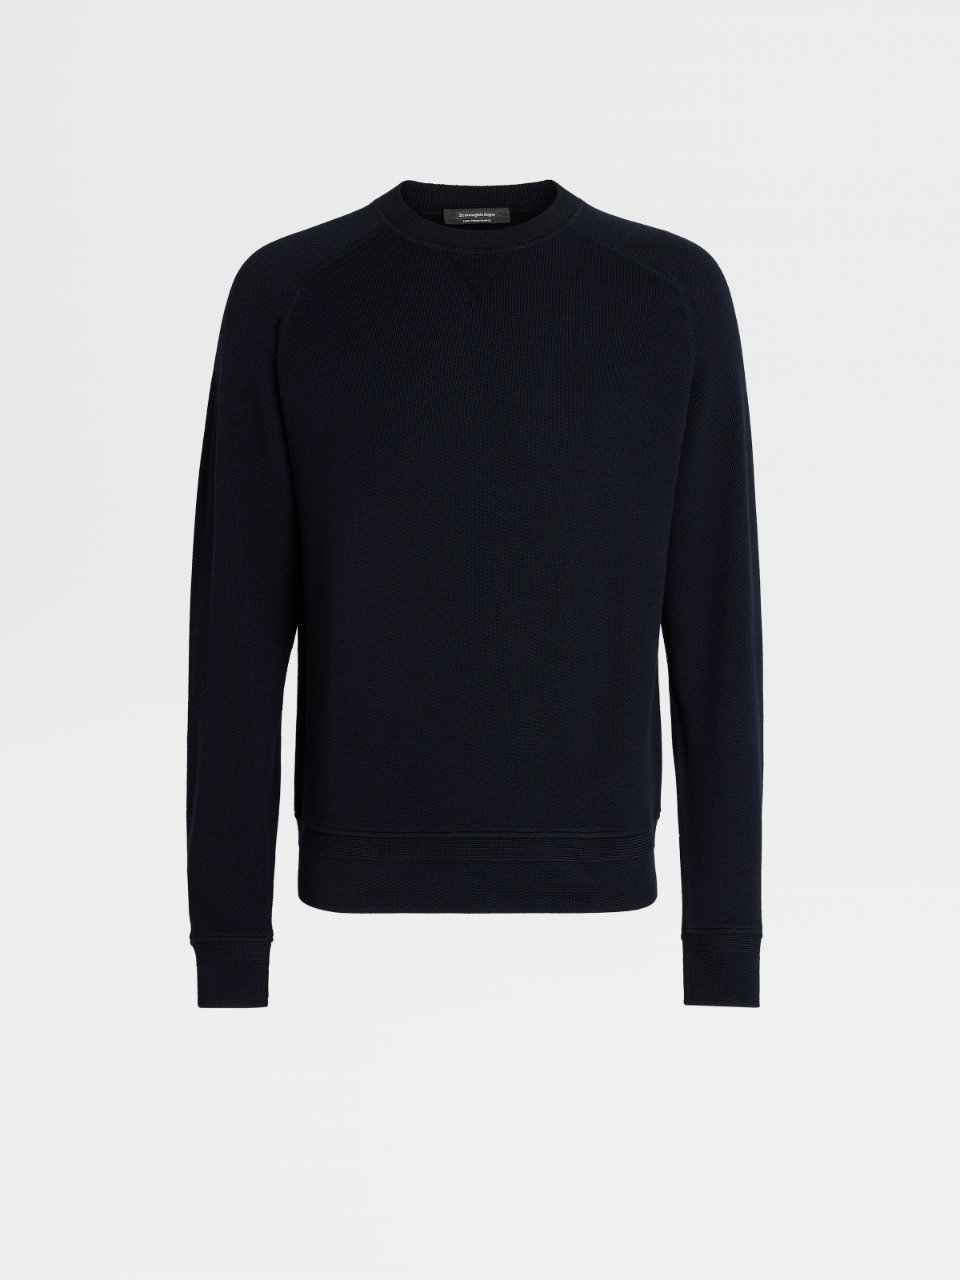 High Performance Wool Crewneck